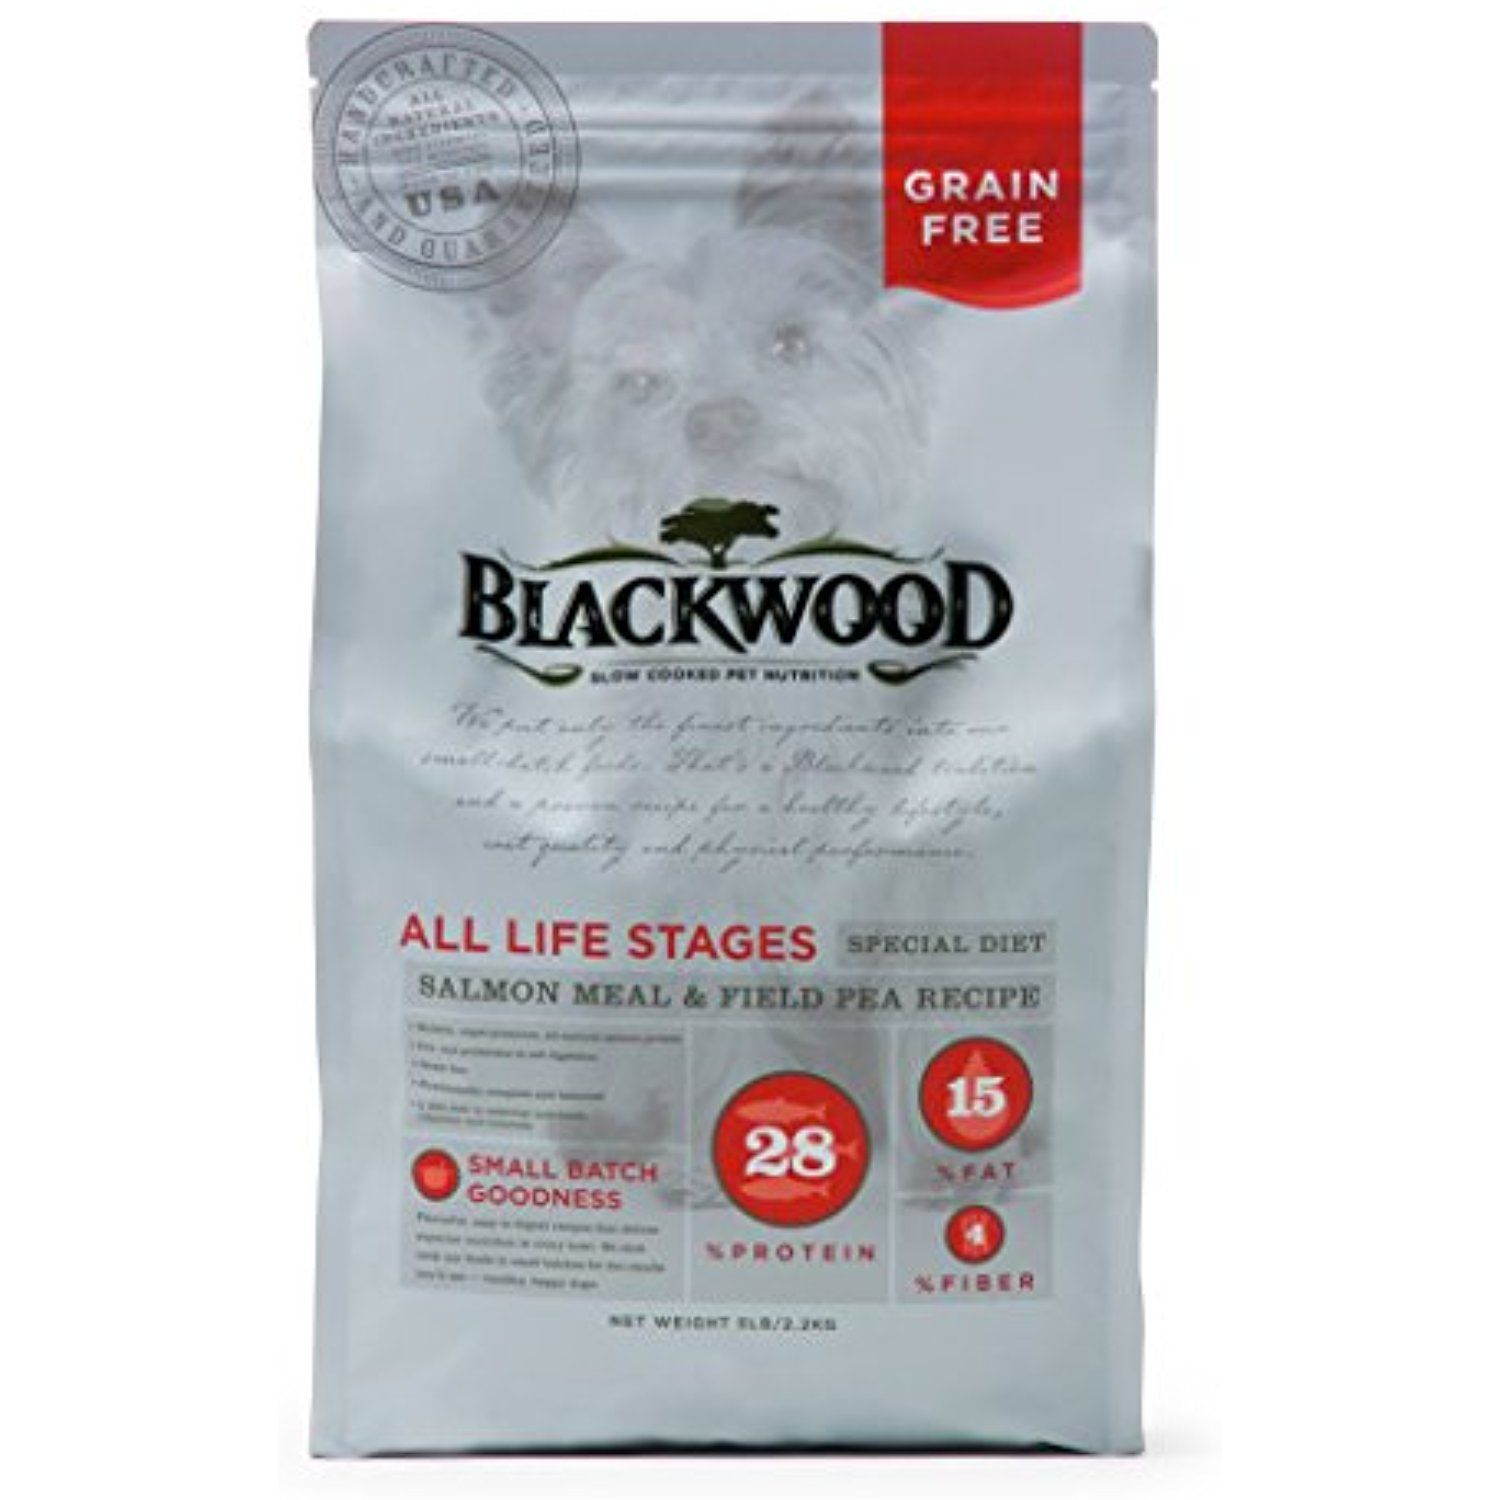 Blackwood Pet Food 22323 All Life Stages Special Diet Grain Free